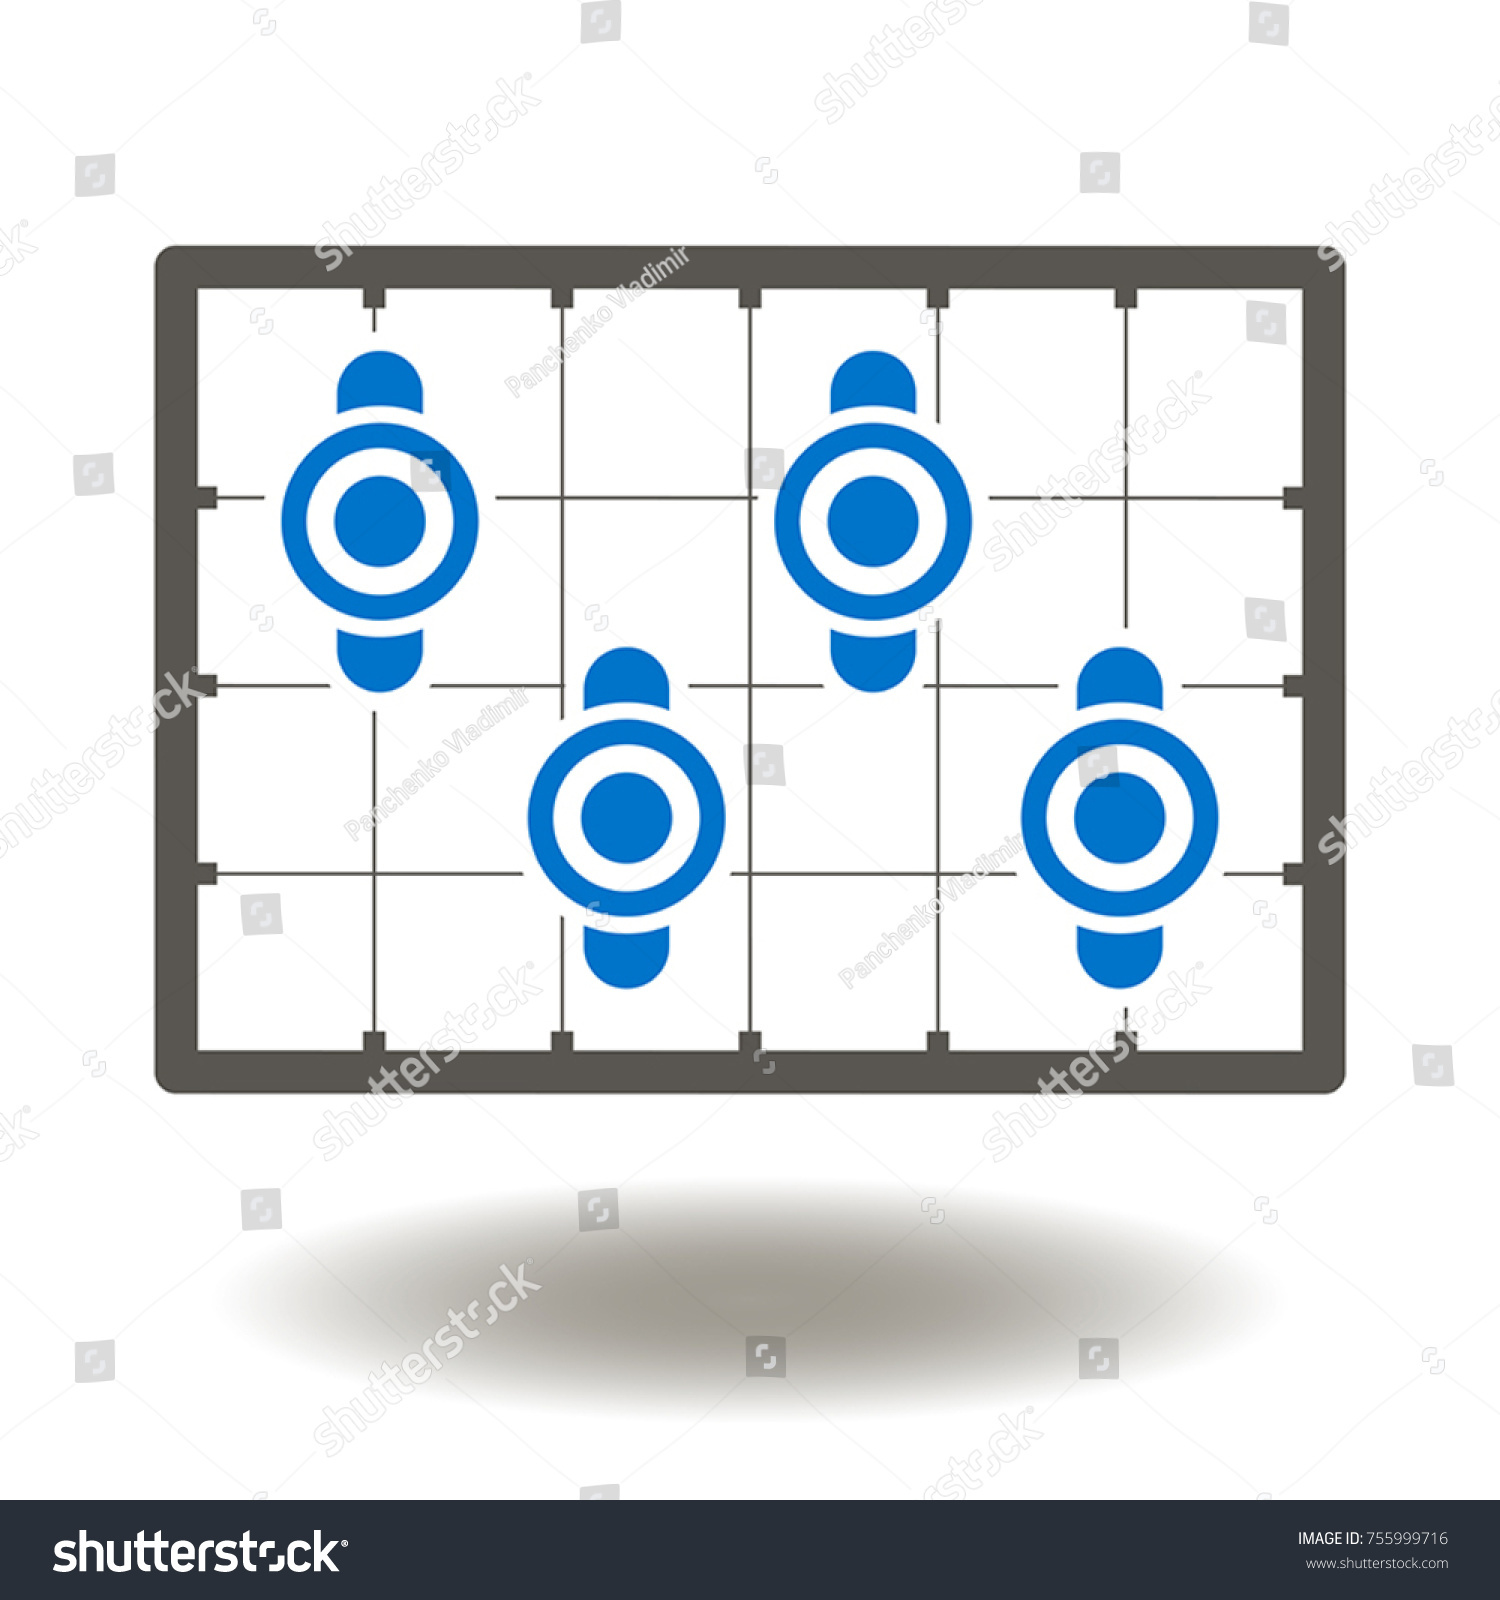 Financial candle stick graph chart icon stock vector 755999716 financial candle stick graph chart icon vector statistic index stock market illustration finance indicator biocorpaavc Gallery